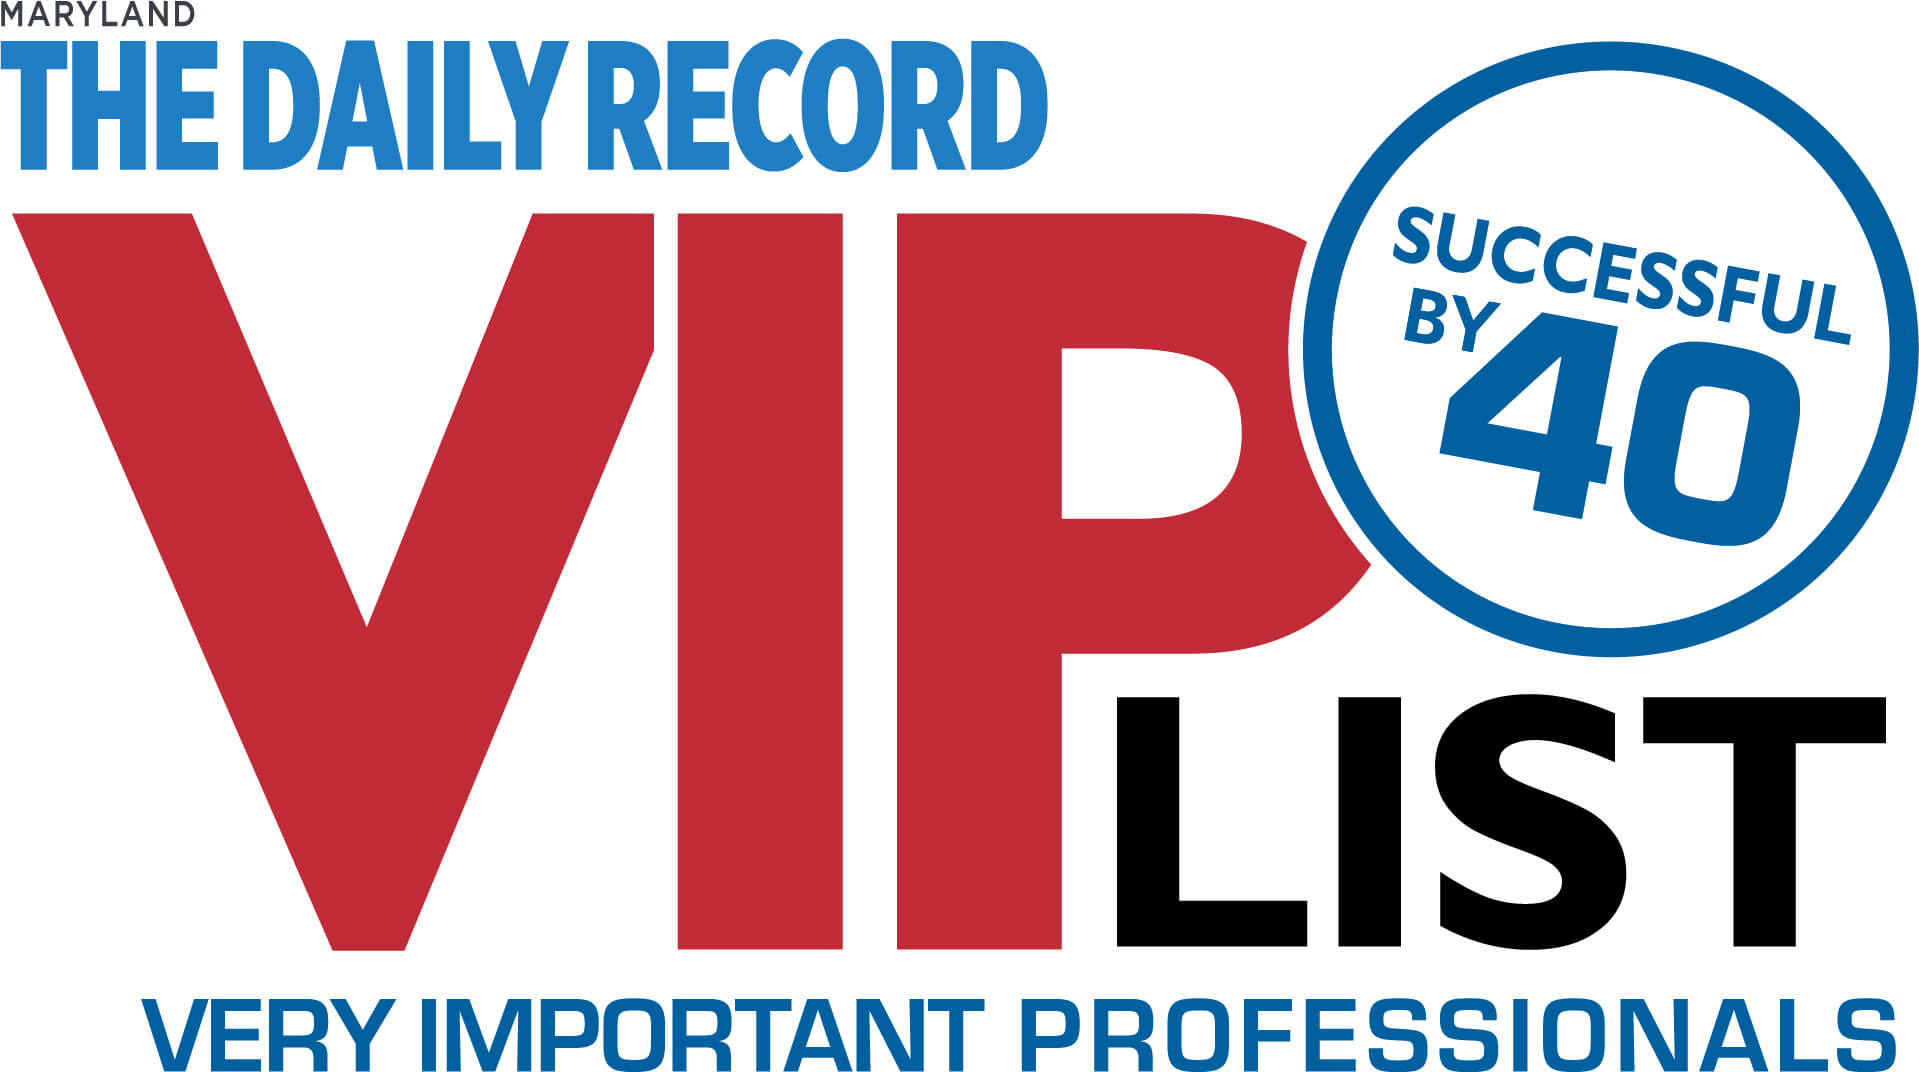 The Daily Record Announces Annual VIP List Winners